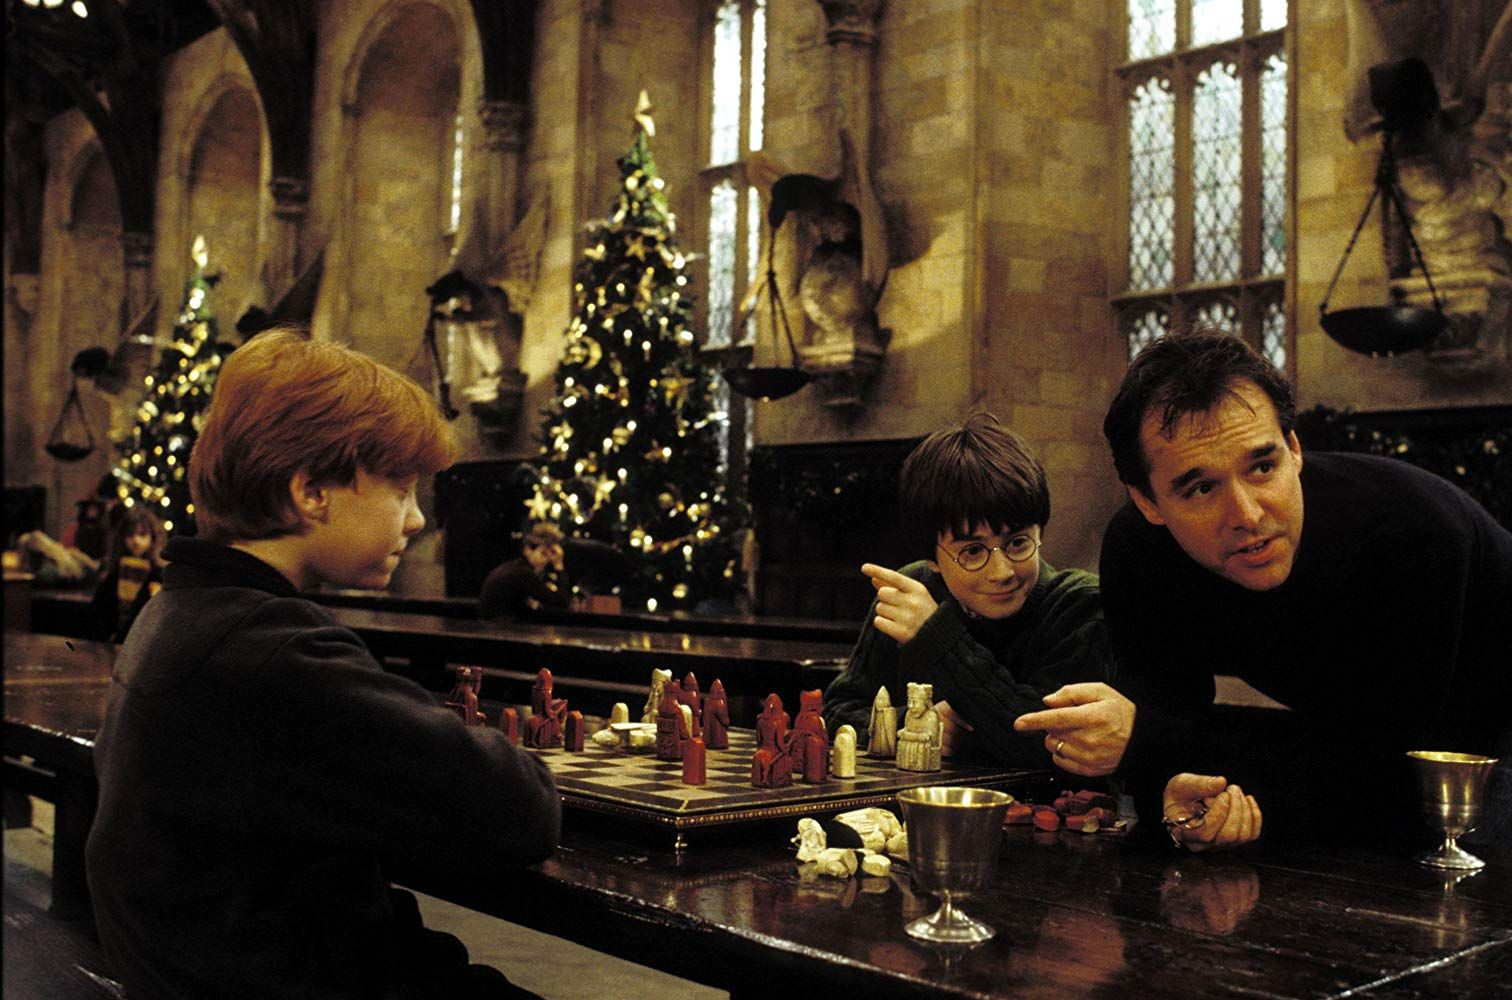 Chris Columbus Rupert Grint And Daniel Radcliffe In Harry Potter And The Sorcerer S Stone 20 Daniel Radcliffe Harry Potter The Sorcerer S Stone Harry Potter